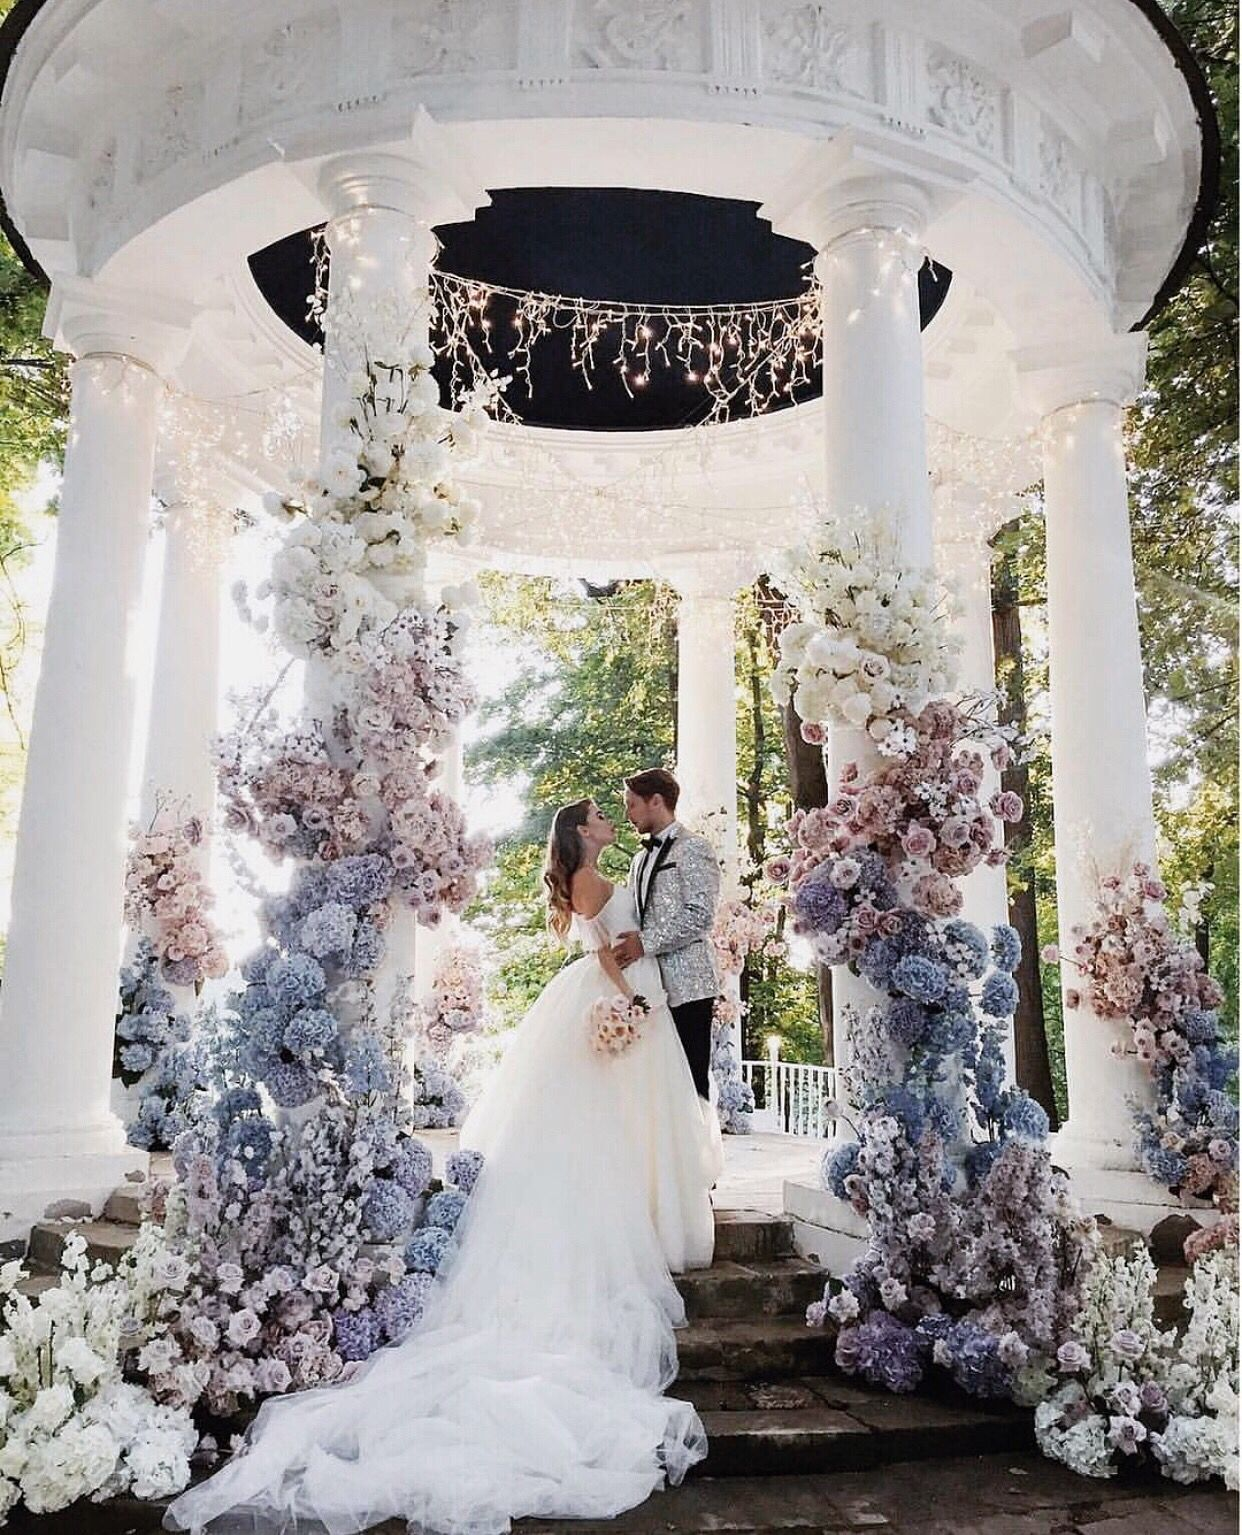 Save If This Could Be Your Dream Wedding Venue Dream Wedding